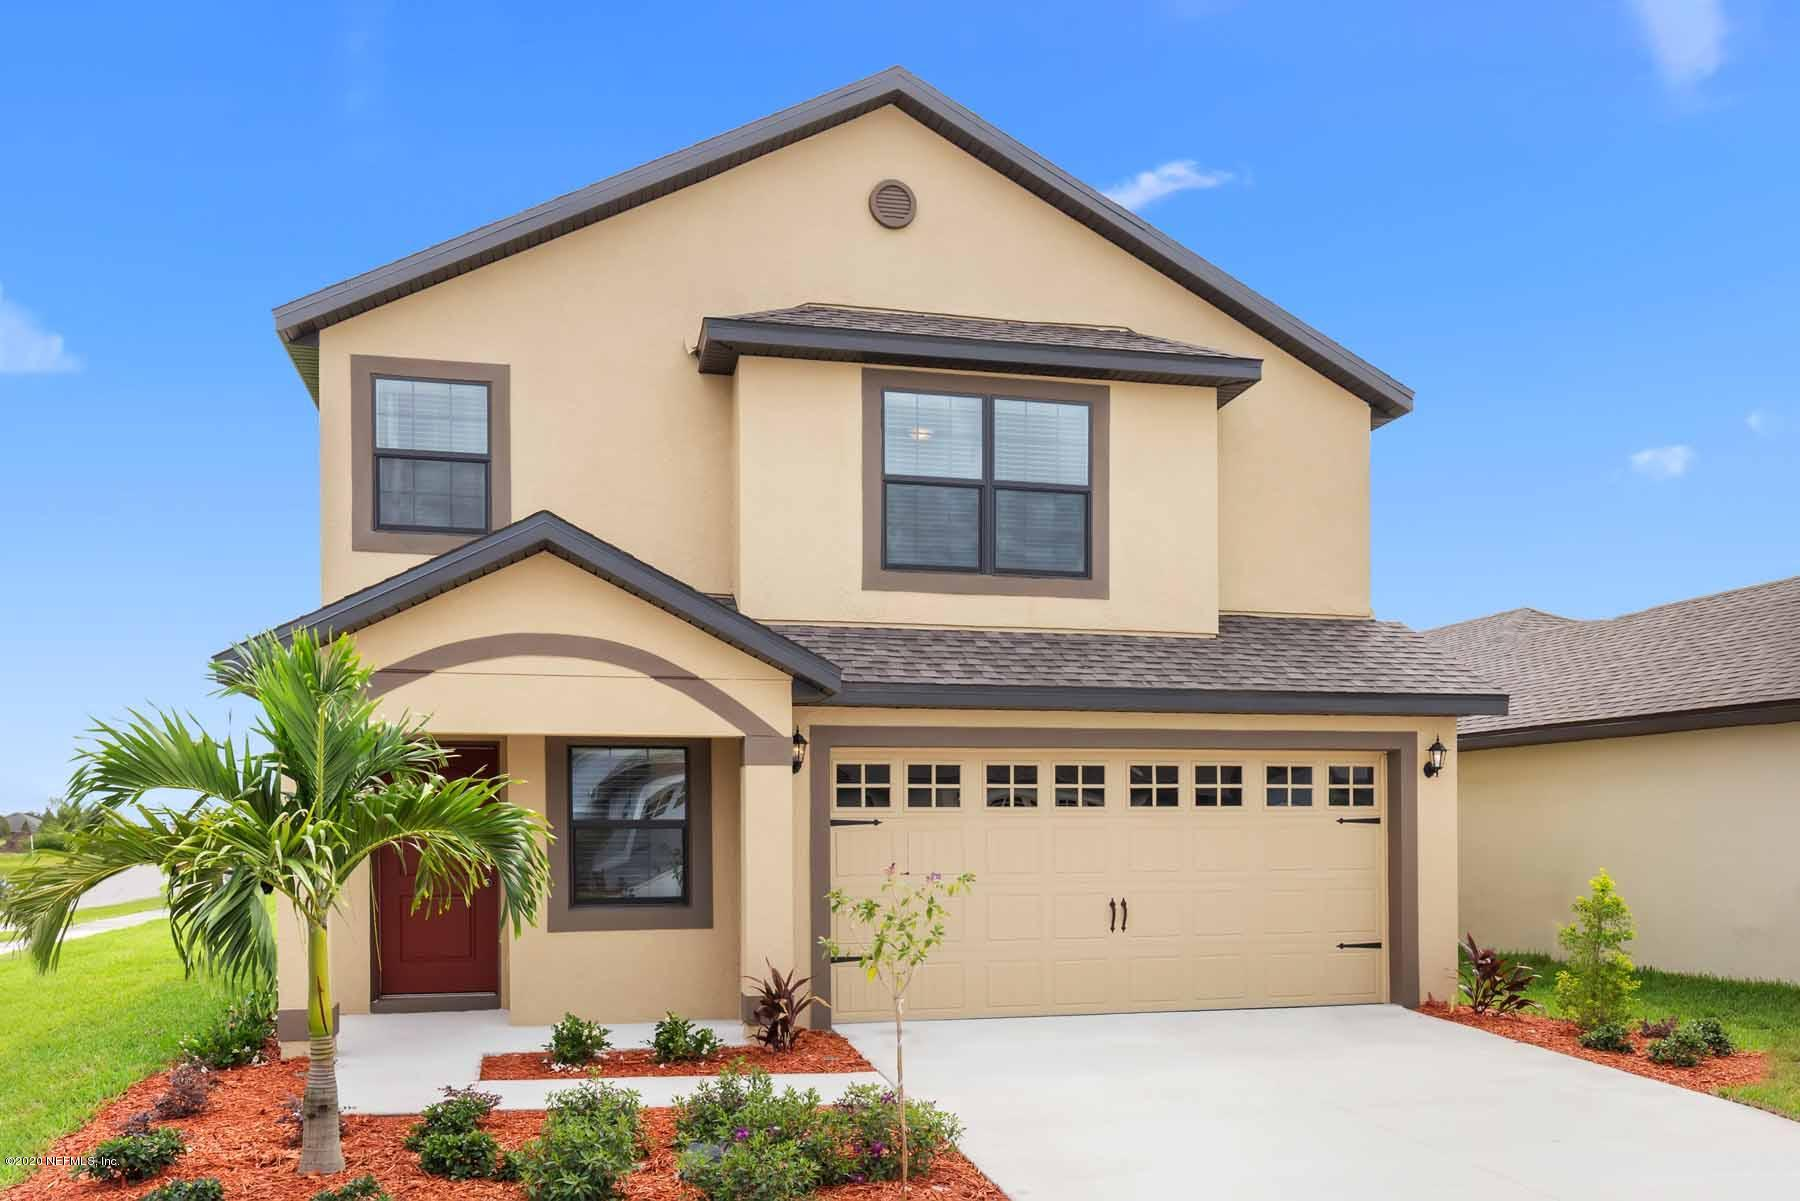 8709 LAKE GEORGE, MACCLENNY, FLORIDA 32063, 4 Bedrooms Bedrooms, ,2 BathroomsBathrooms,Residential,For sale,LAKE GEORGE,1025755